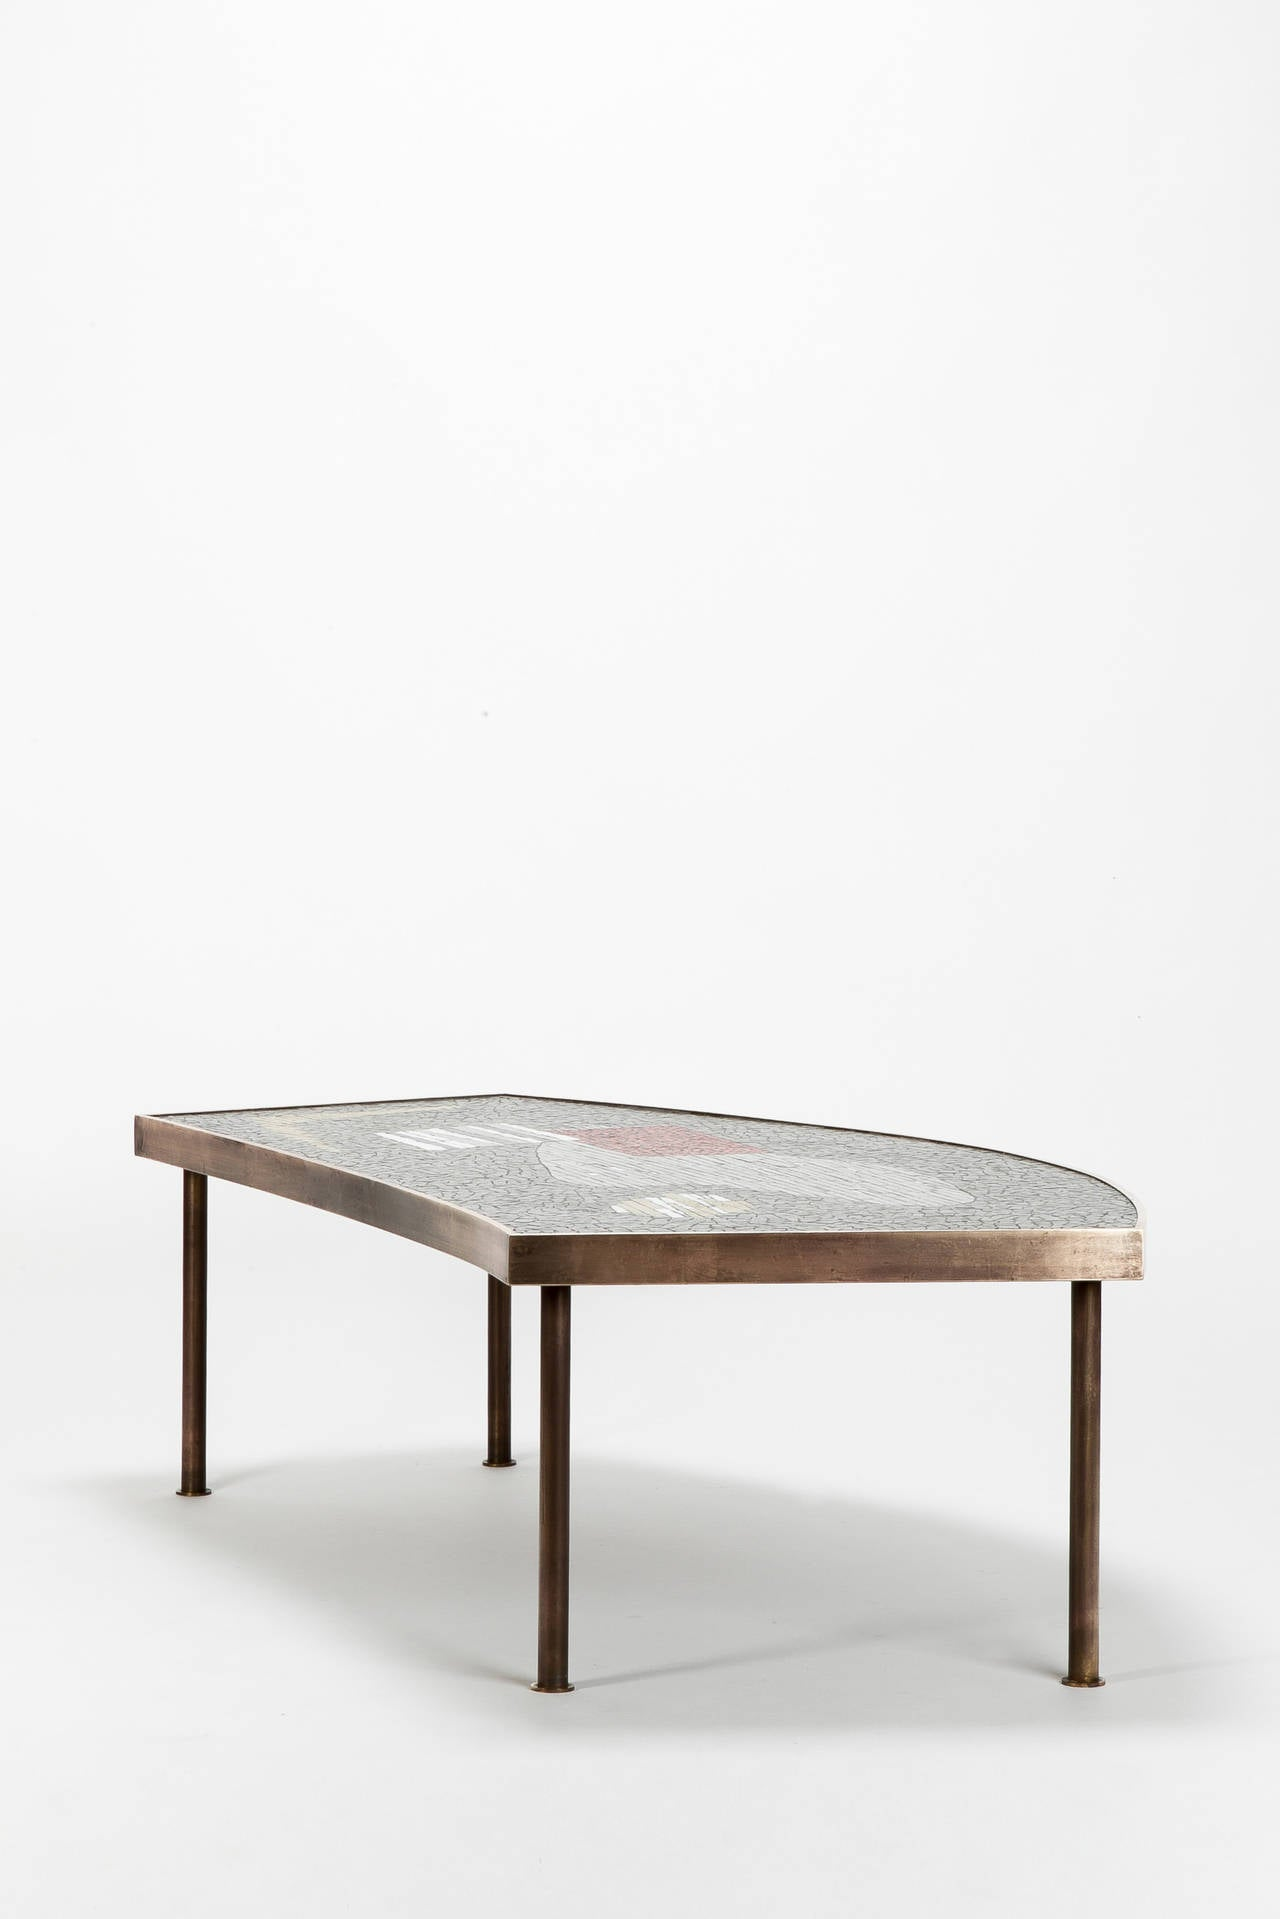 Mosaic Tiles and Brass Coffee Table by Berthold Müller